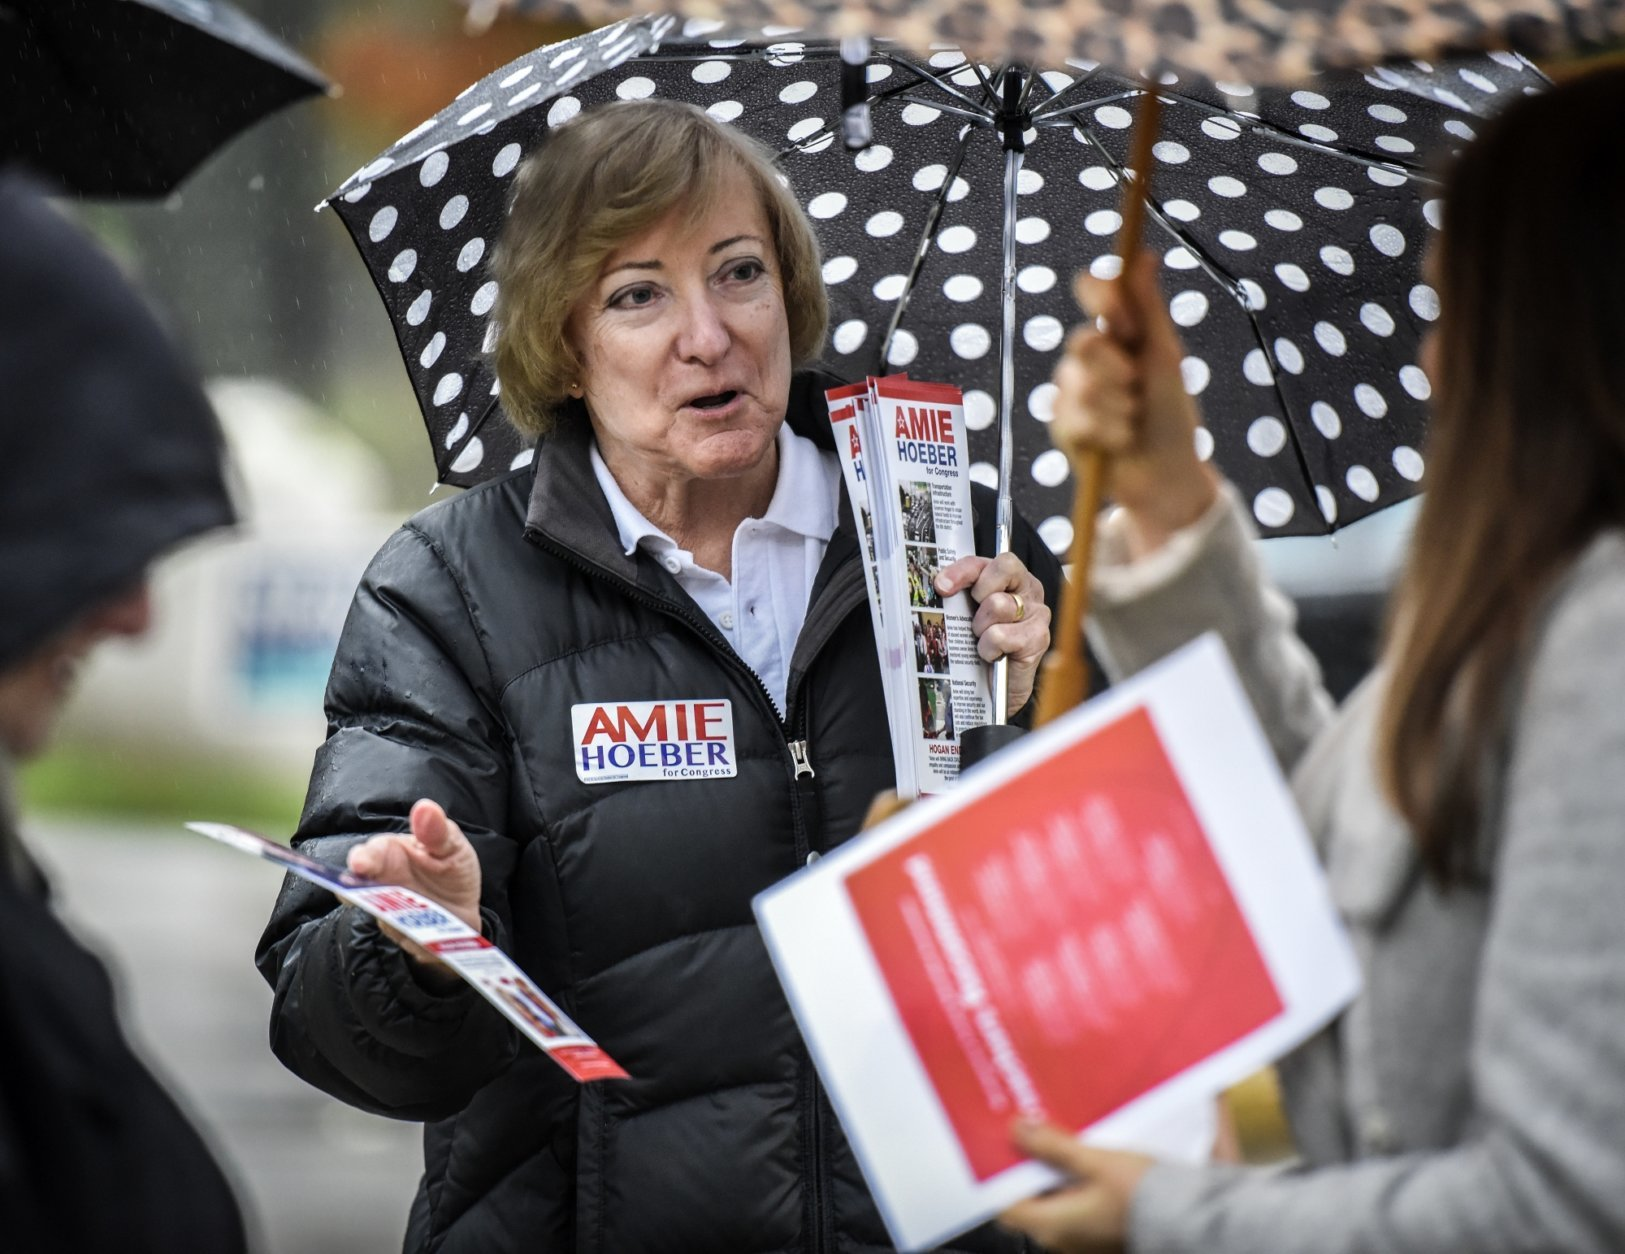 Maryland's 6th Congressional District candidate Amie Hoeber greets voters in front of a voting location Tuesday, Nov. 6, 2018, in Potomac, Md. David Trone, a Democrat and co-owner of a national wine store chain, is running against Hoeber, a Republican and national security consultant. (Bill O'Leary/The Washington Post via AP)